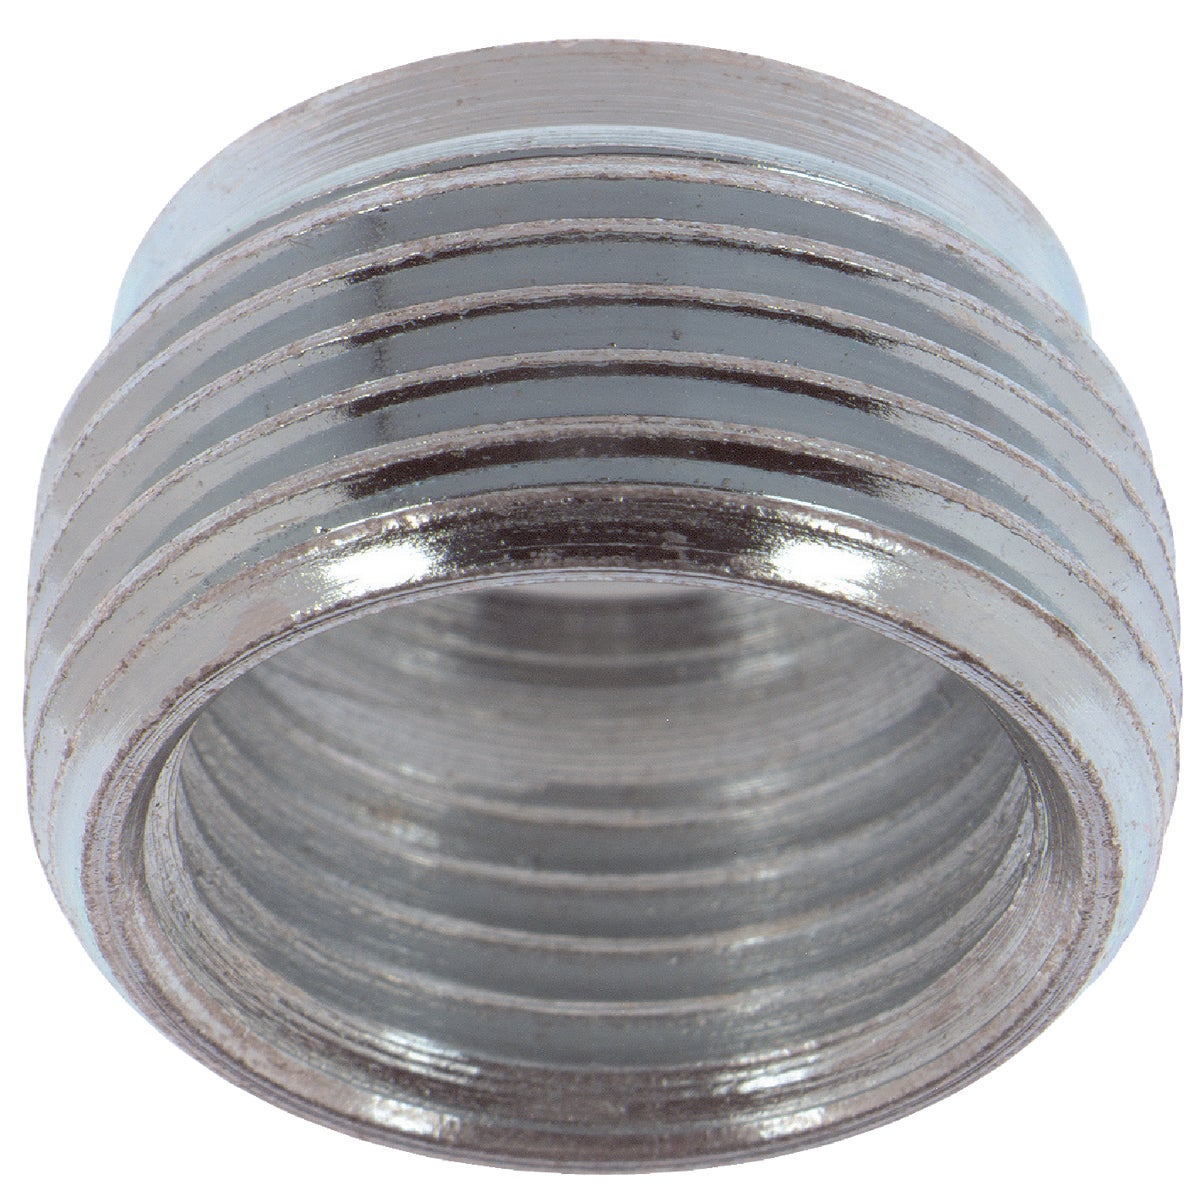 3/4X1/2 REDUCE BUSHING - RB1214 by Thomas & Betts